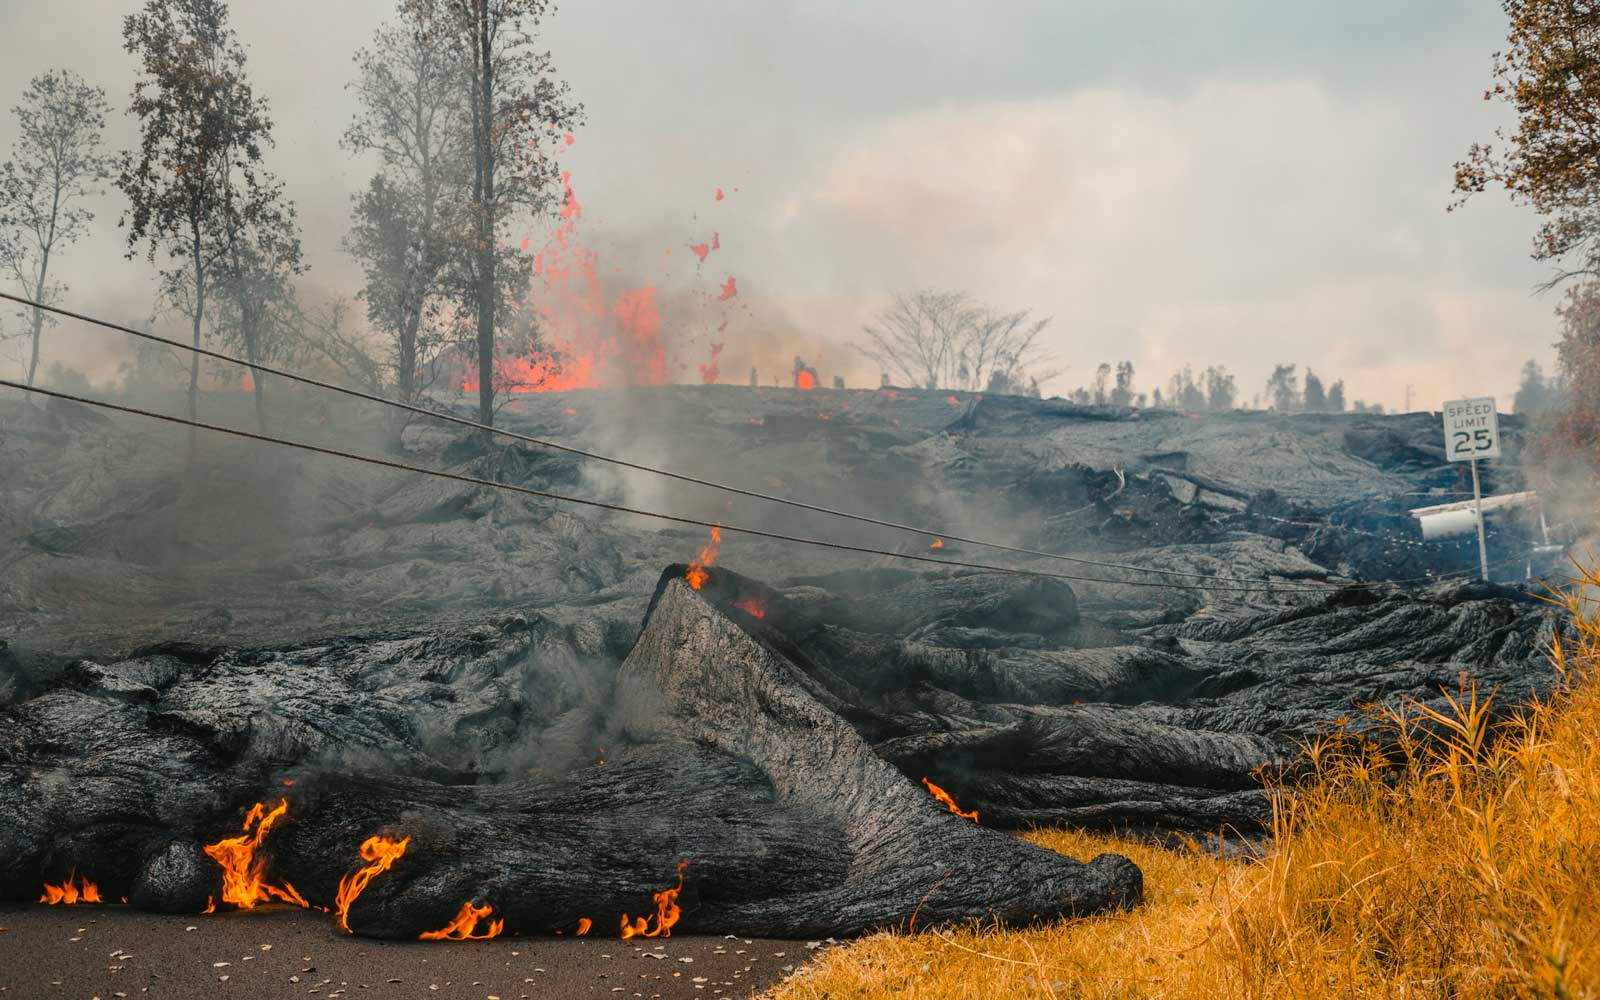 Lava flows from Fissure 21 in the aftermath of eruptions from the Kilauea volcano on Hawaii's Big Island